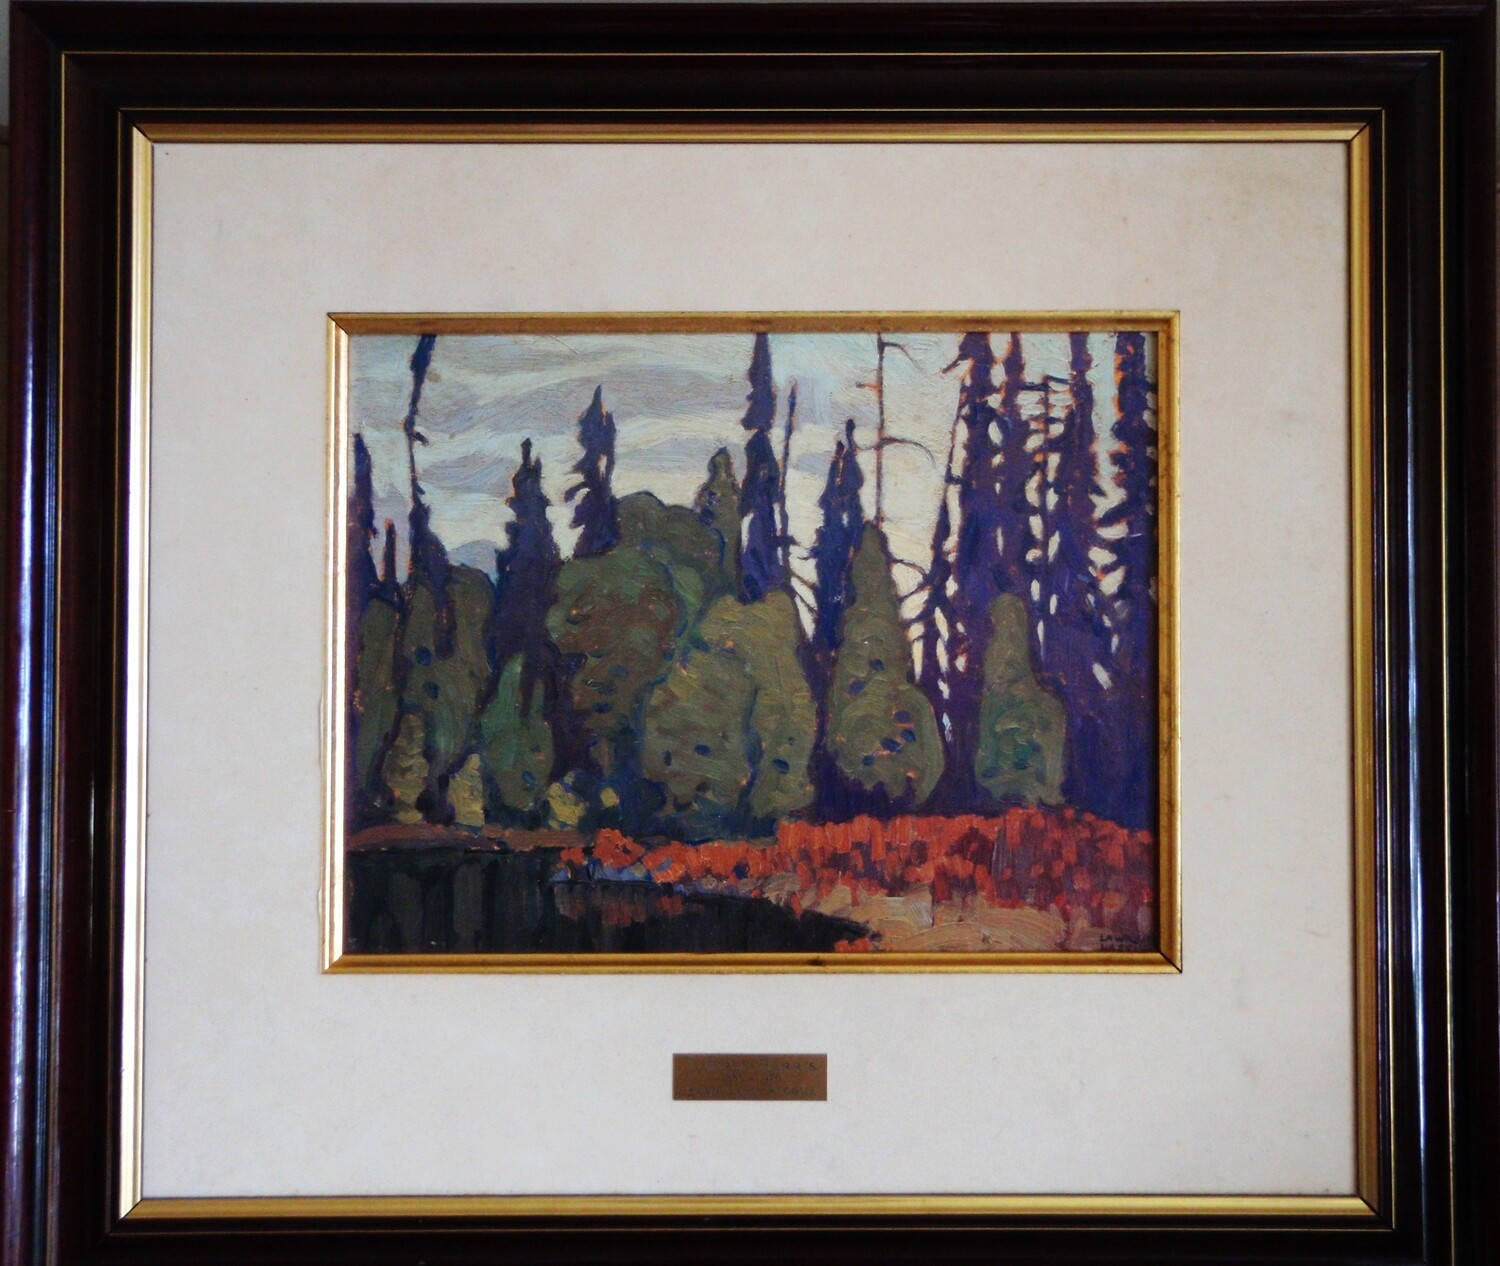 Lawren Harris Group of Seven Sand Lake Algoma Painting Ltd Ed 52 of 460 Oil on Panel